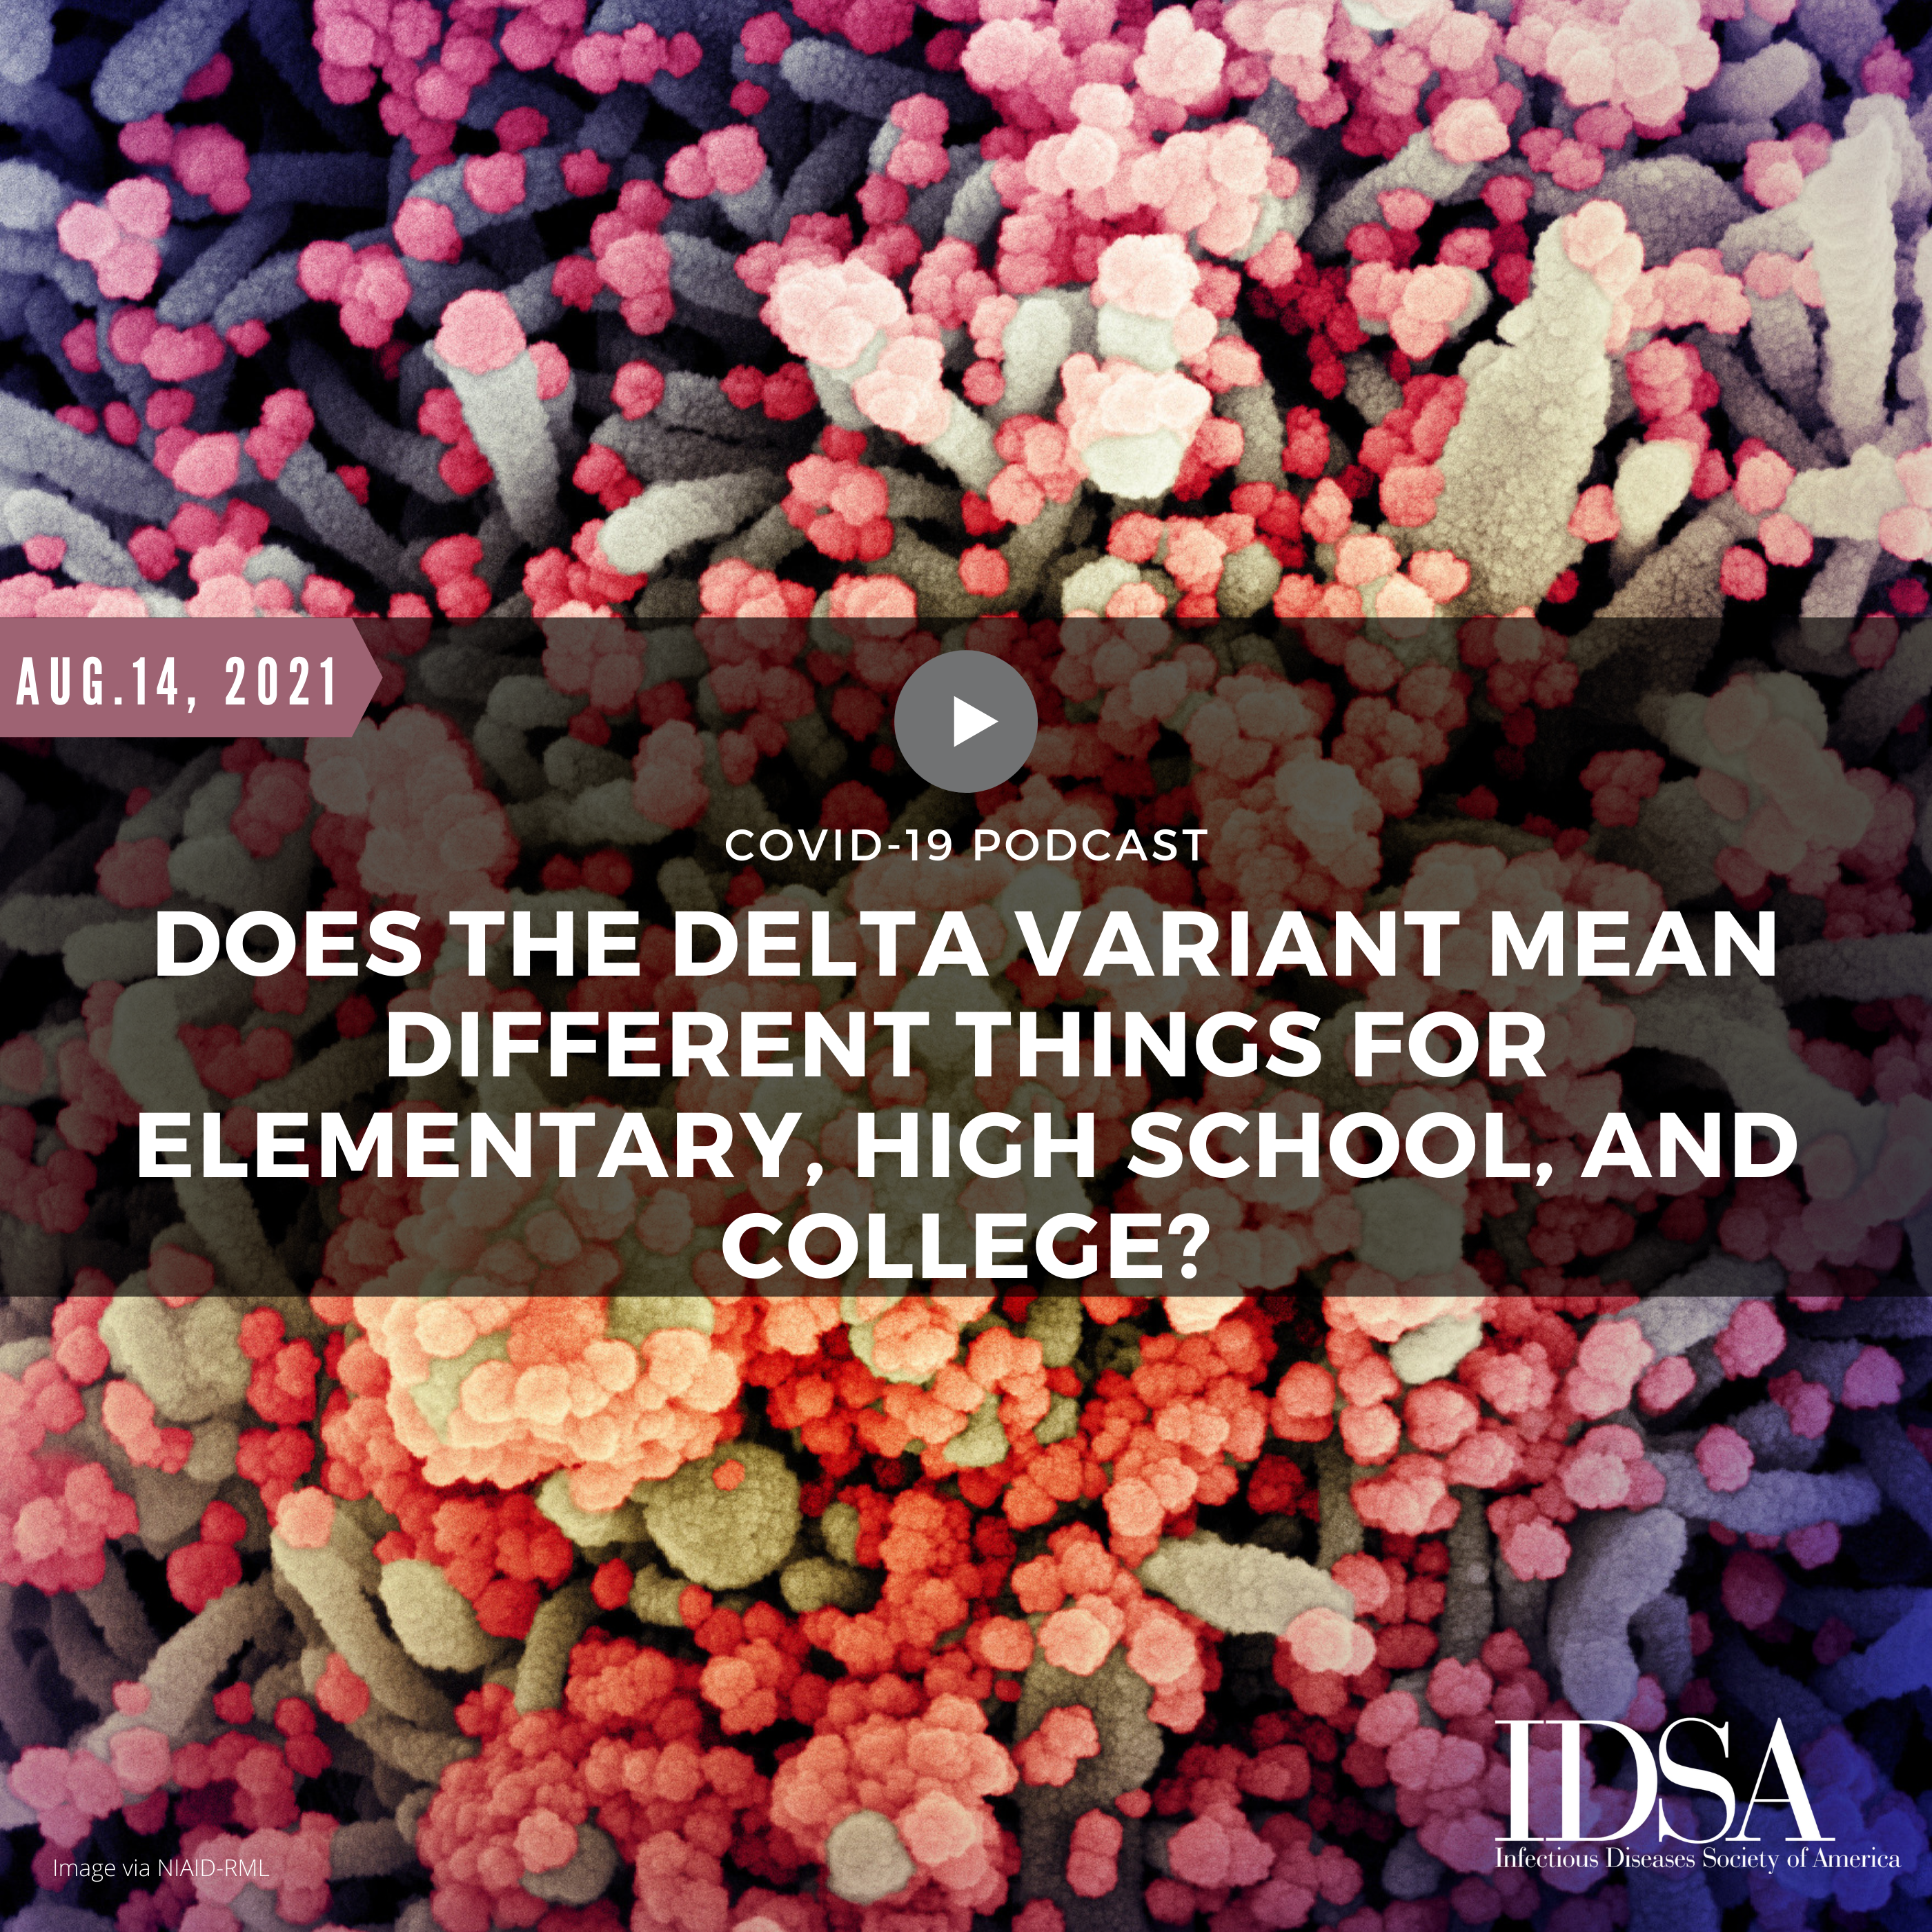 Does the Delta Variant Mean Different Things for Elementary, High School, and College?